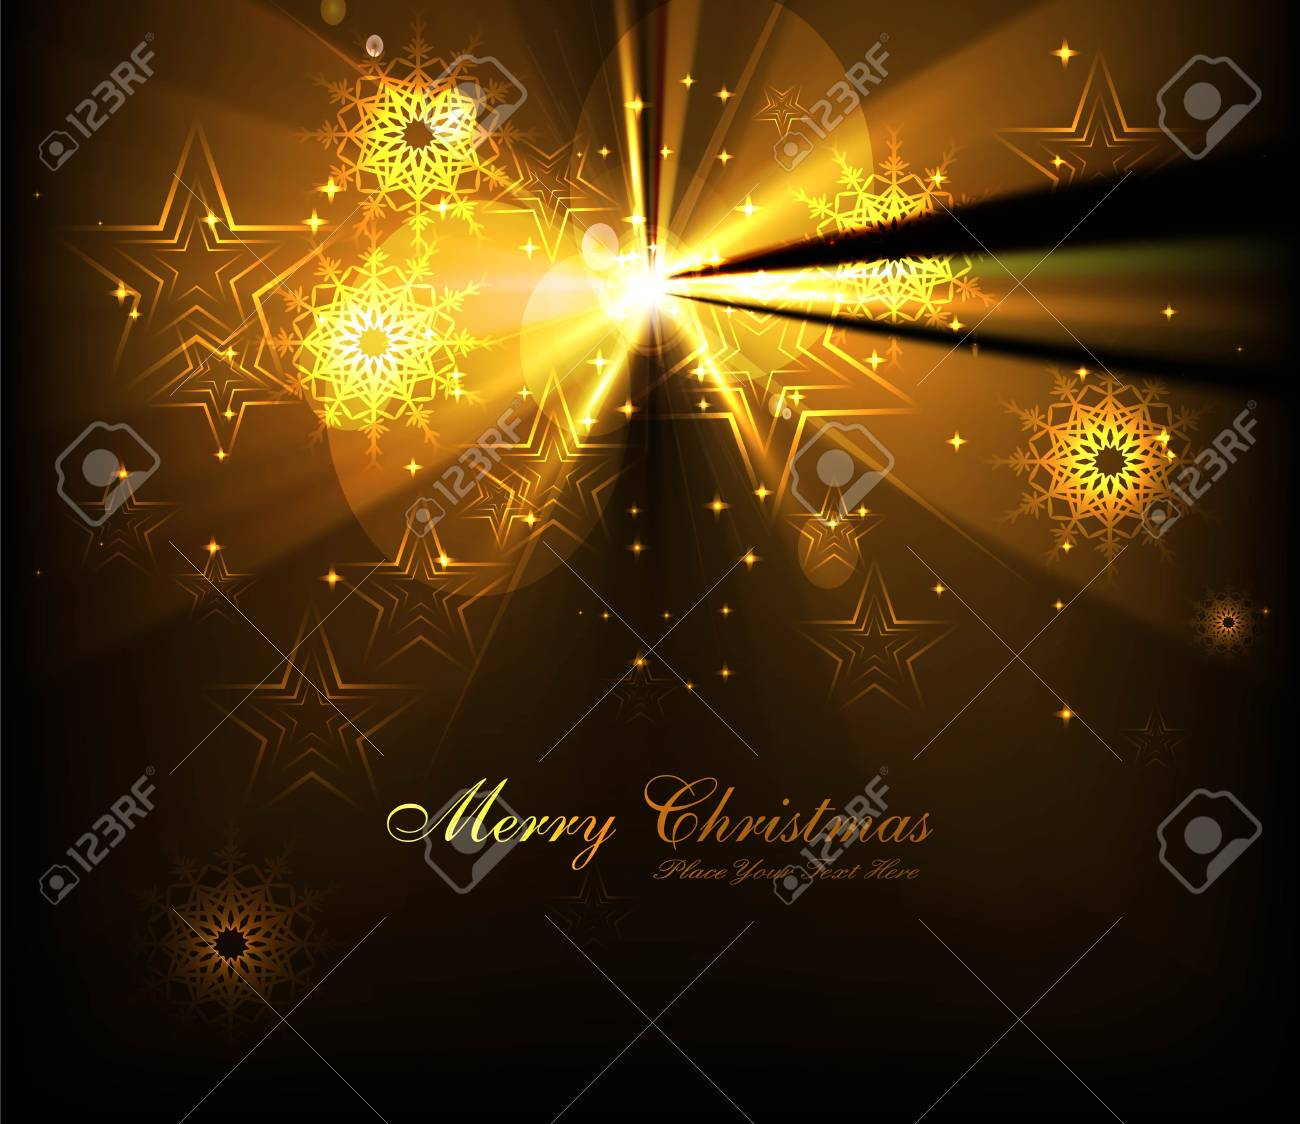 merry christmas tree celebration bright colorful card Stock Vector - 18088927